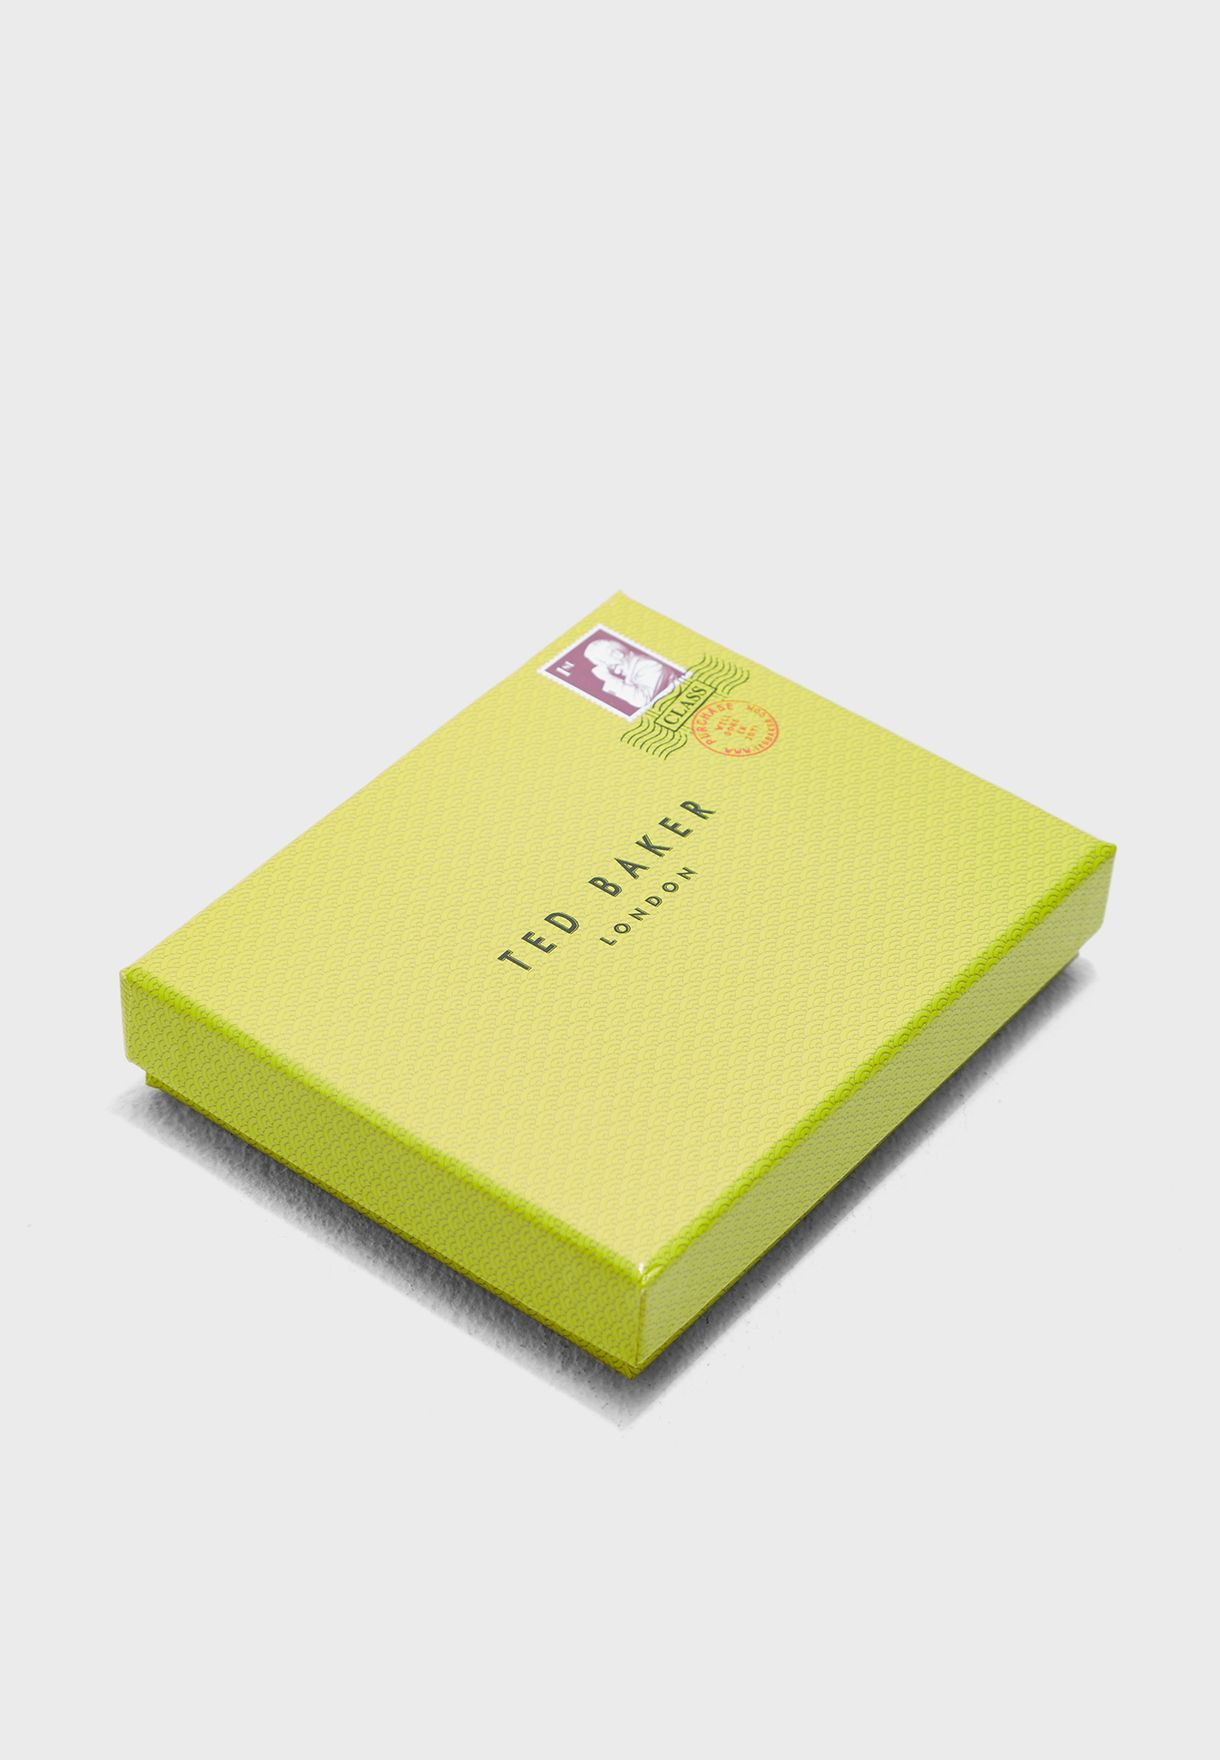 Sllip Card Holders